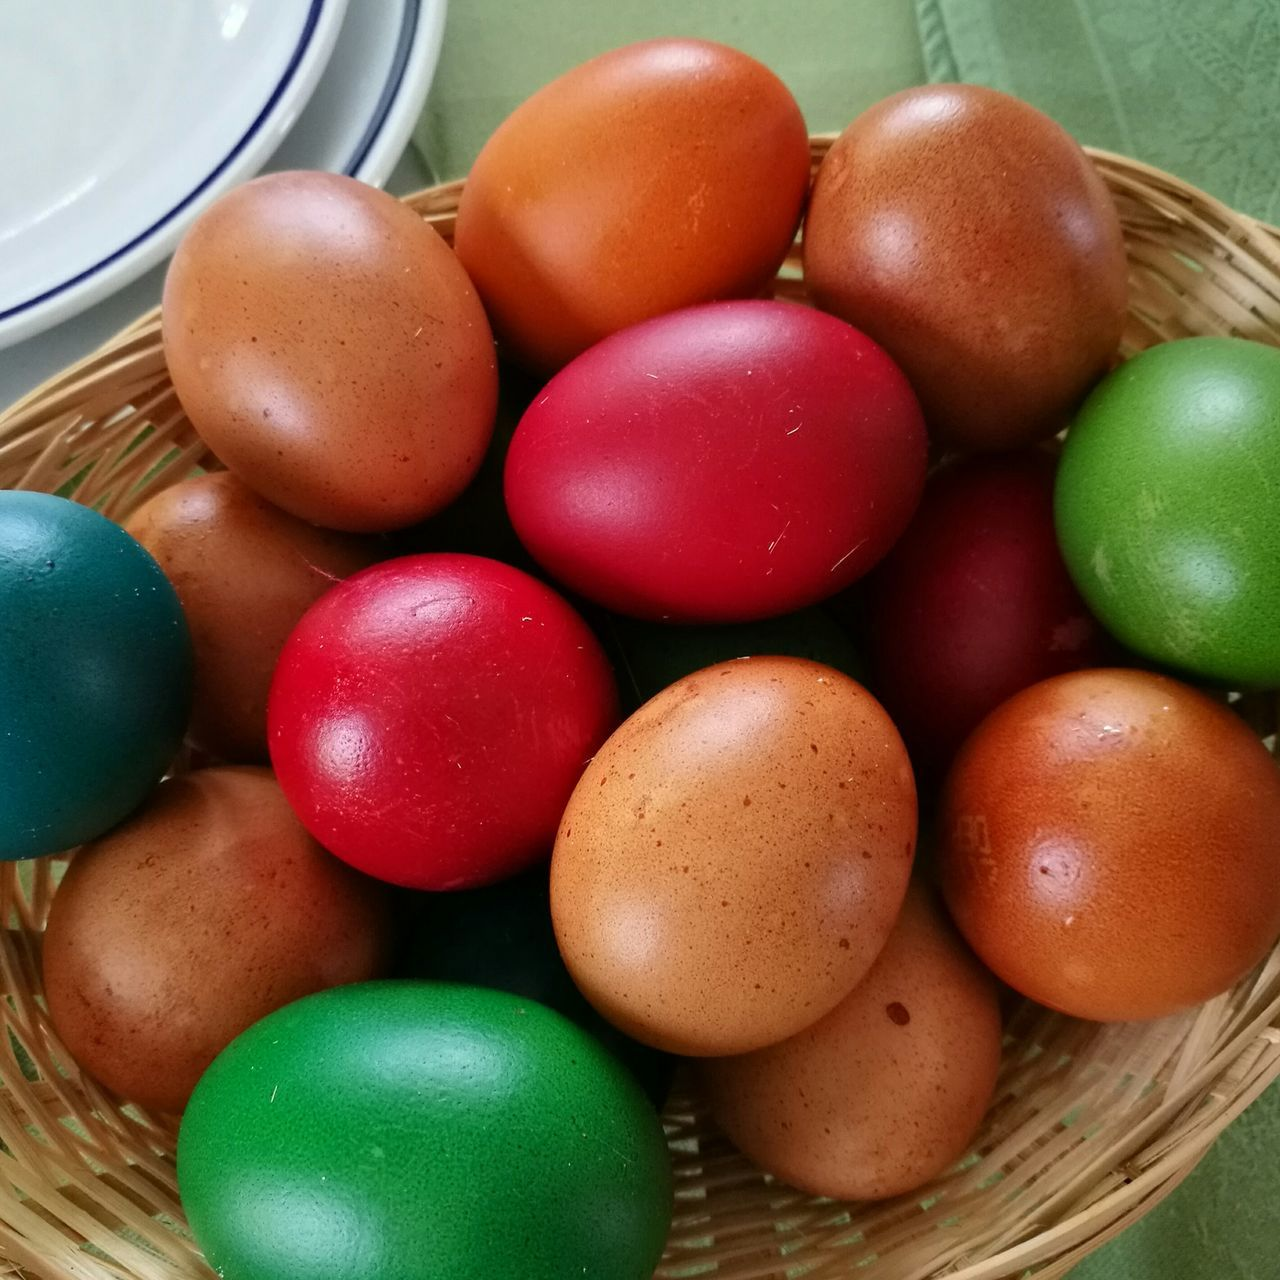 Pasqua Food Easter Basket Easter Egg Food And Drink Indoors  Green Color Multi Colored Variation No People Healthy Eating Close-up Freshness Day